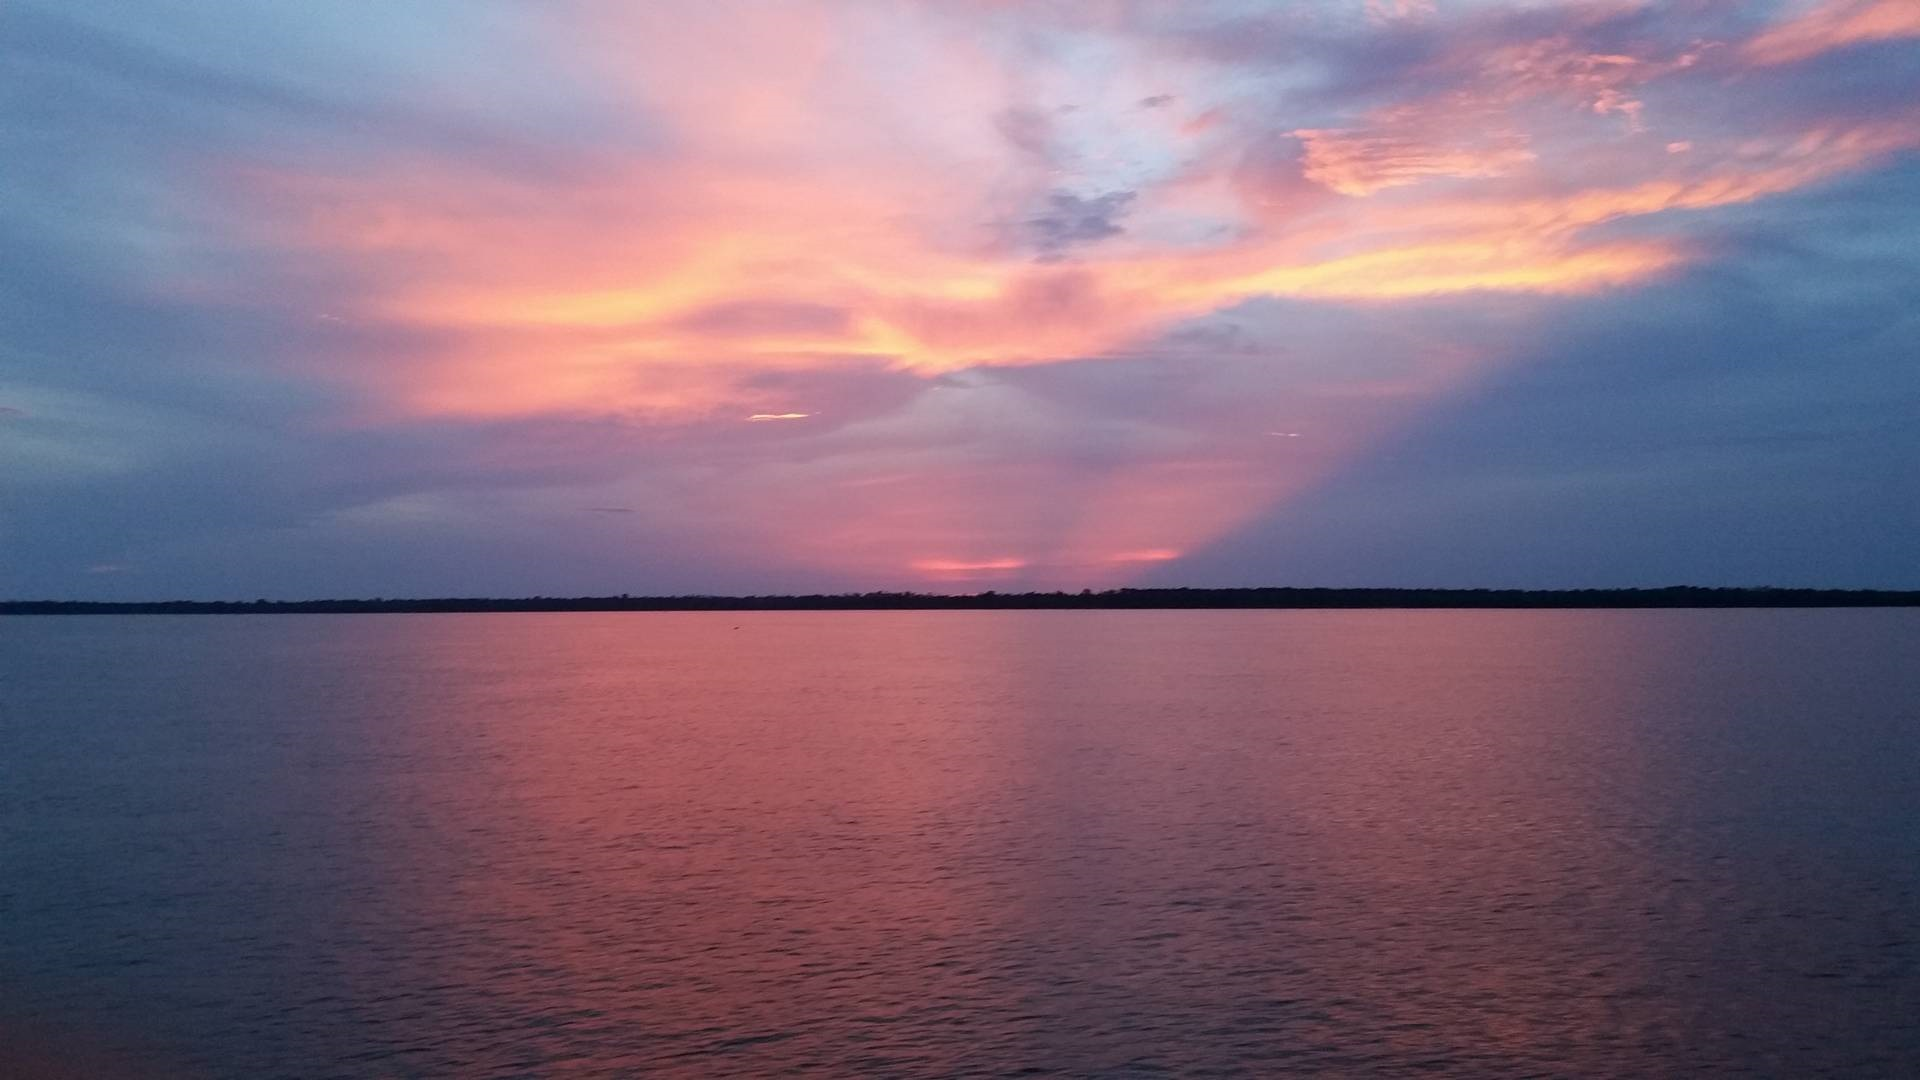 View from Belem to Manaus